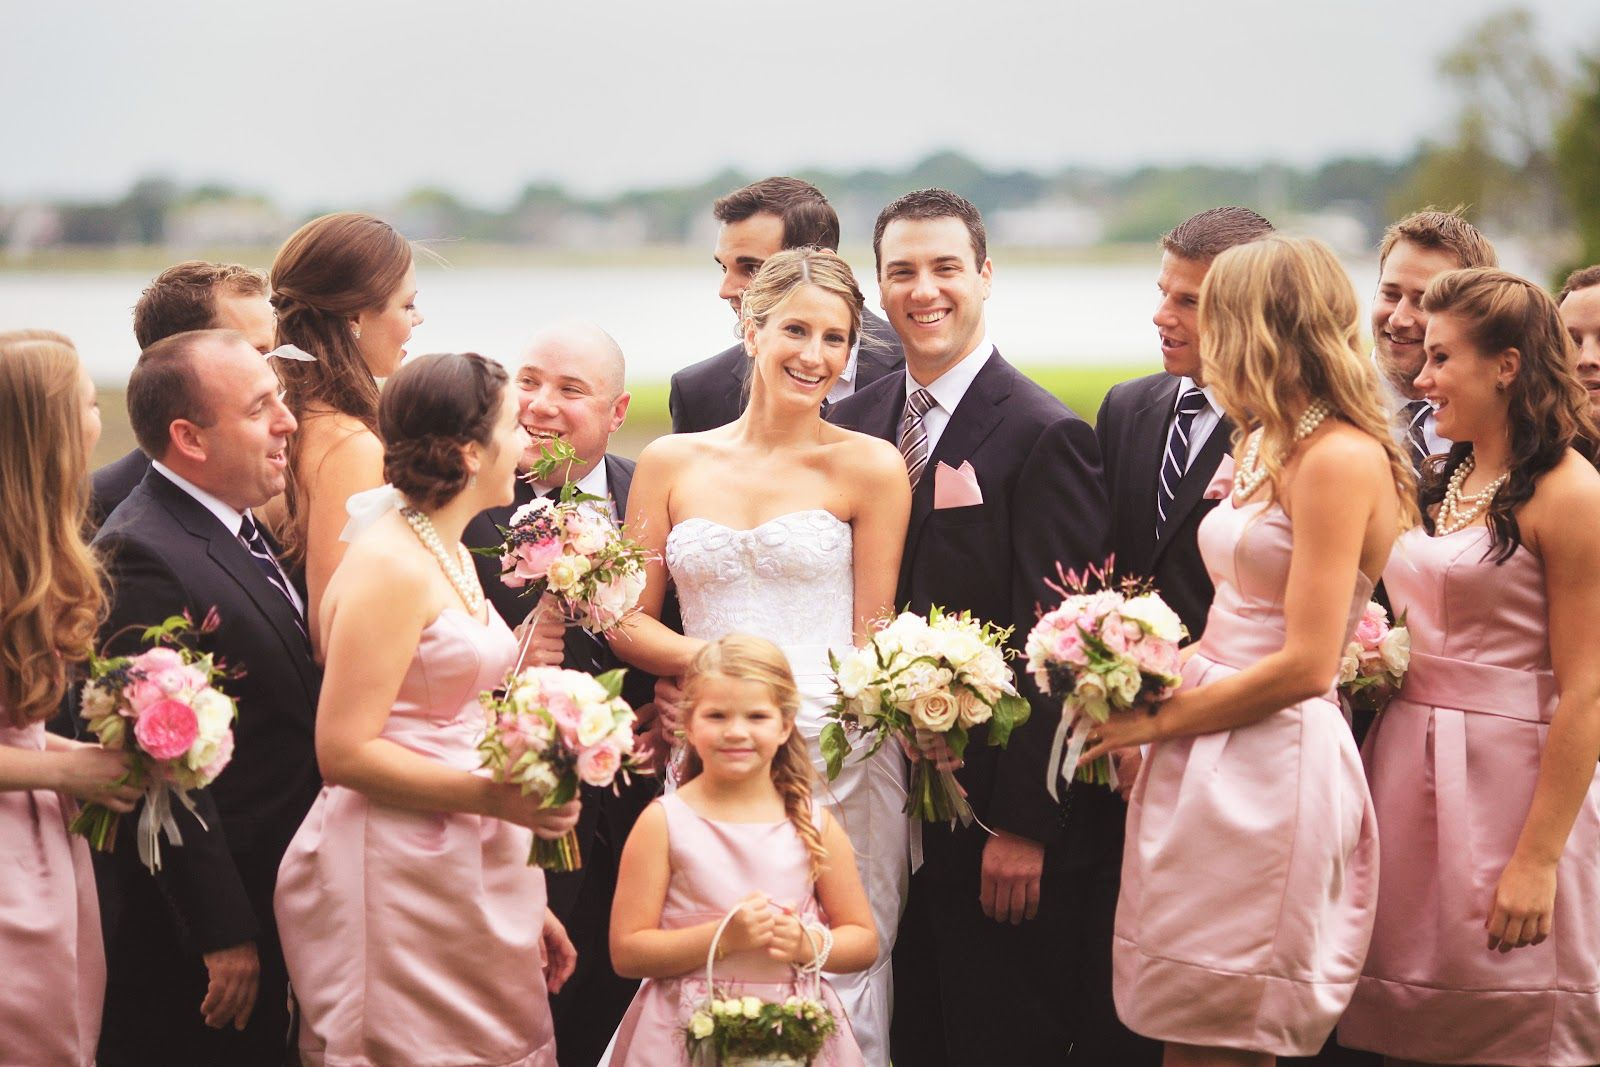 Blush Pink Cream And Navy Color Scheme By Garry Ana Parzych Jessica Mikes Wedding